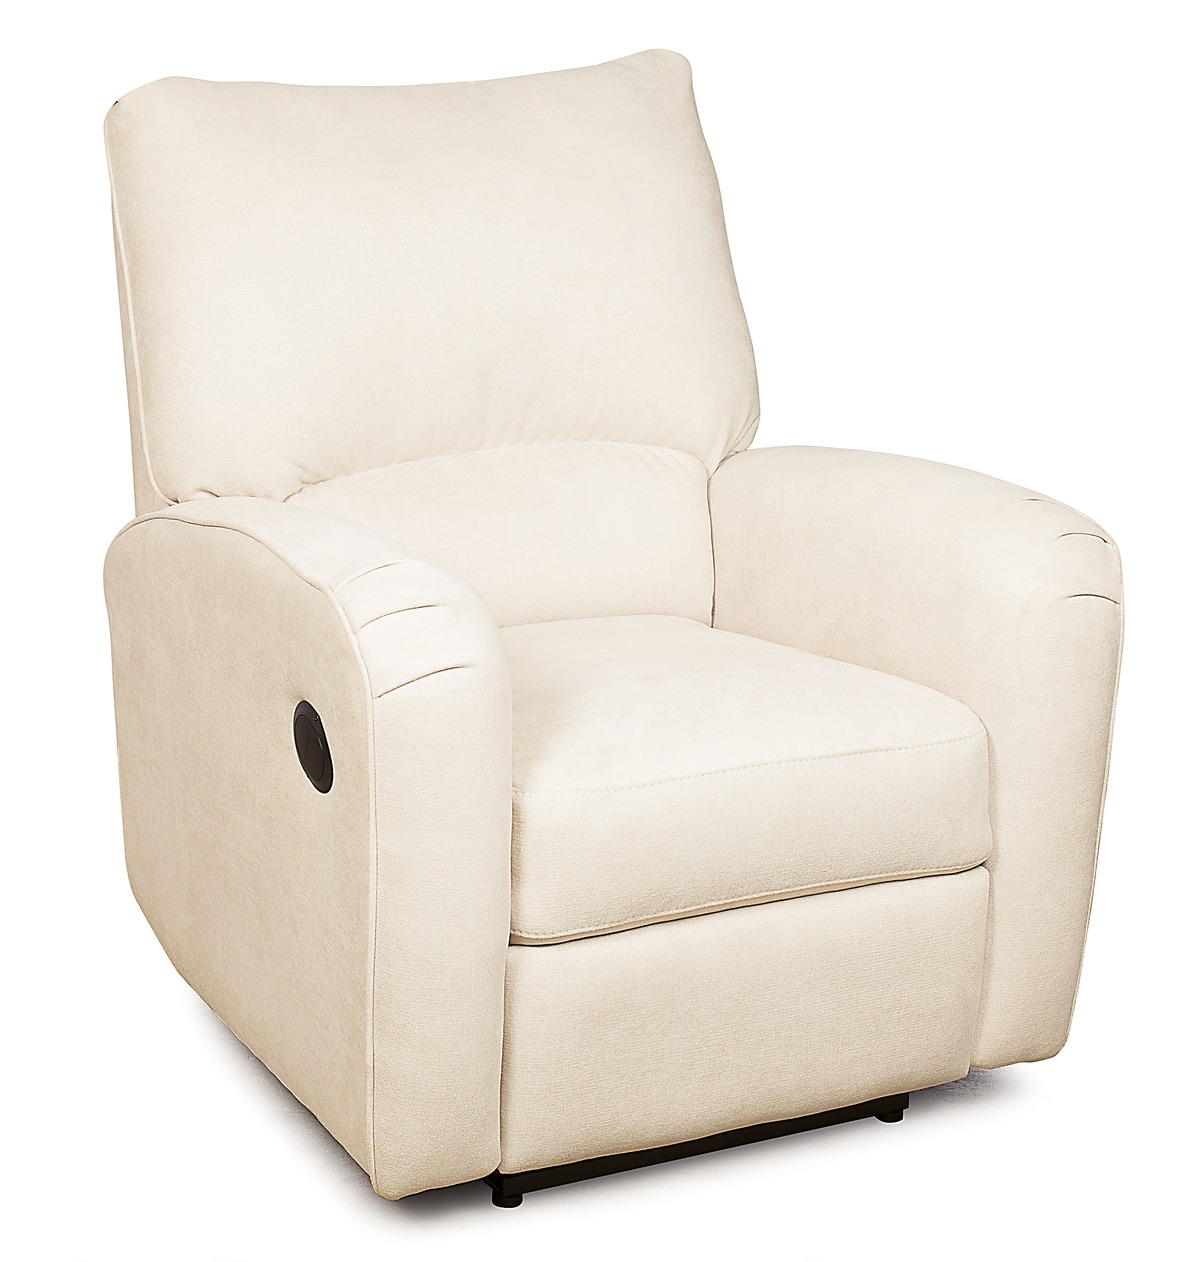 Remarkable Colt 42005 Recliner Sofas And Sectionals Uwap Interior Chair Design Uwaporg